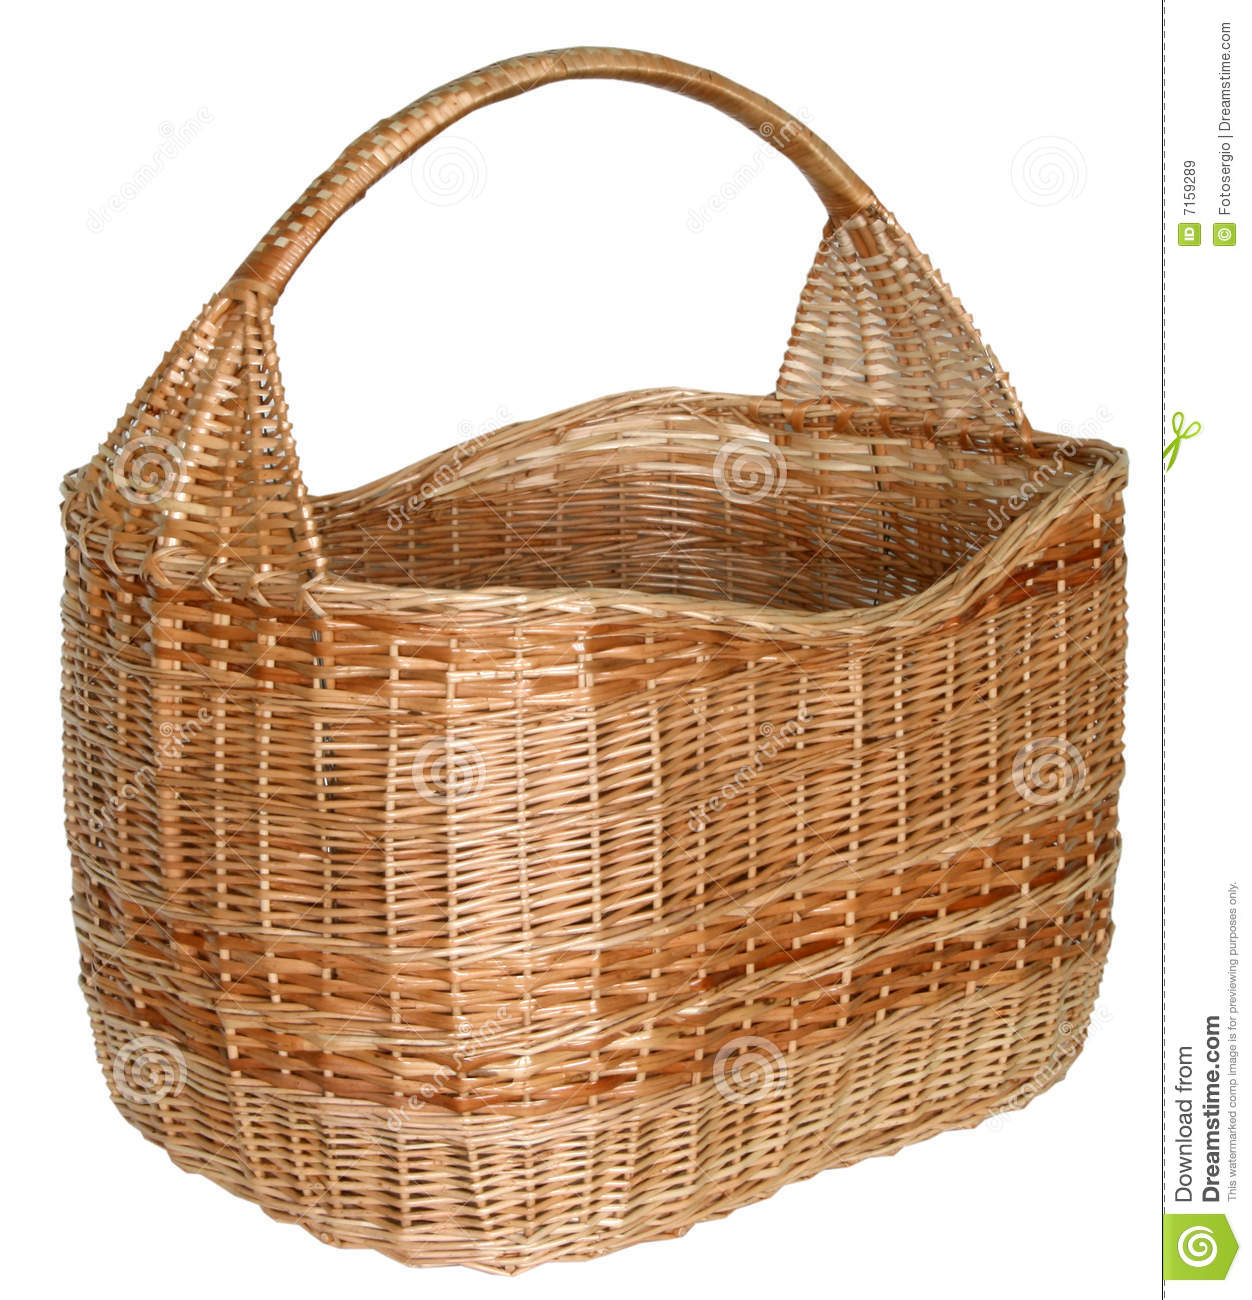 Handmade cane baskets : Isolated handmade wicker basket royalty free stock